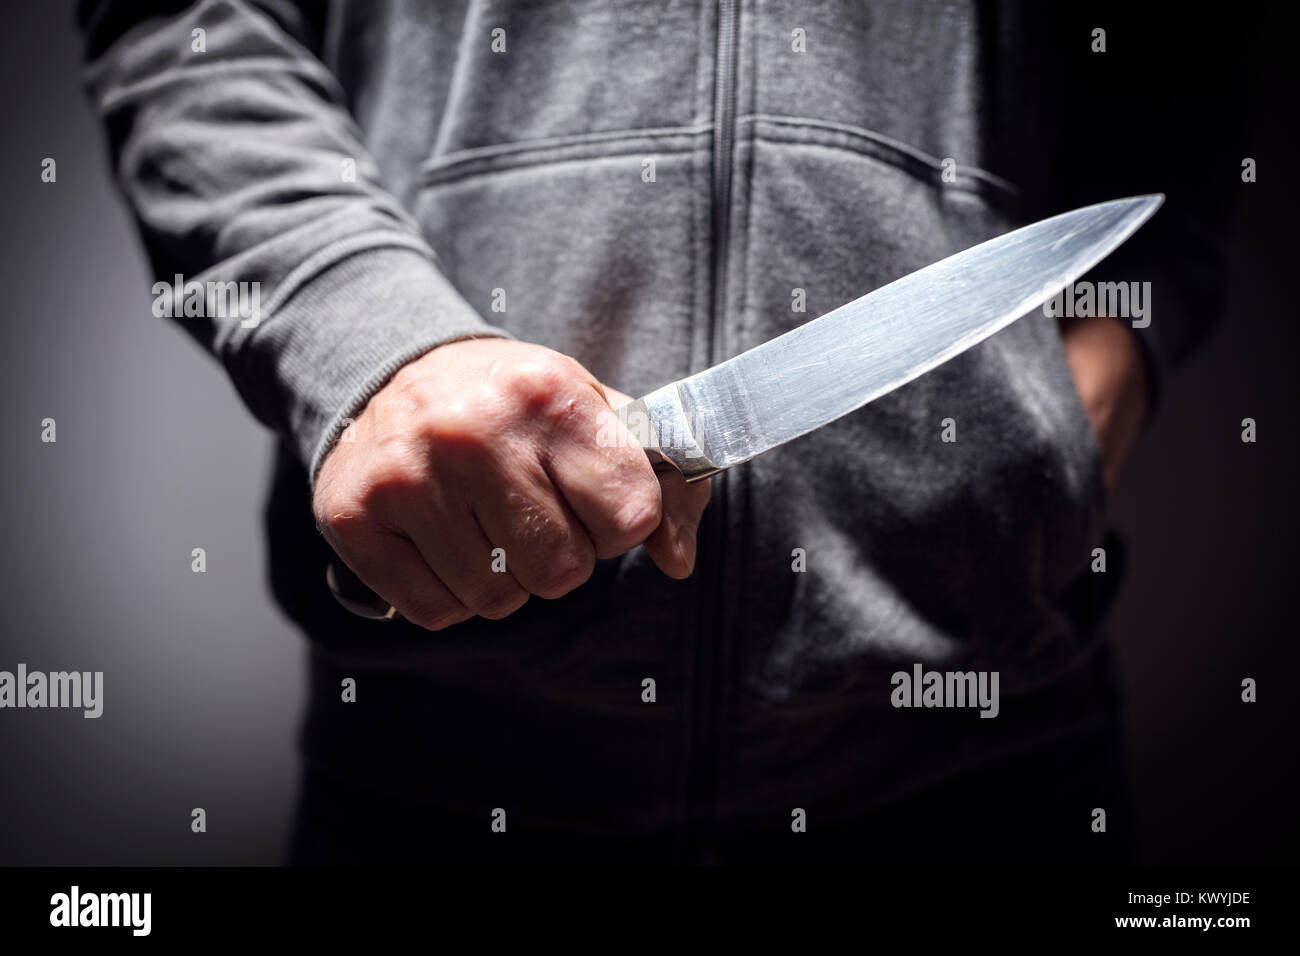 Criminal with knife weapon threatening to stab - Stock Image